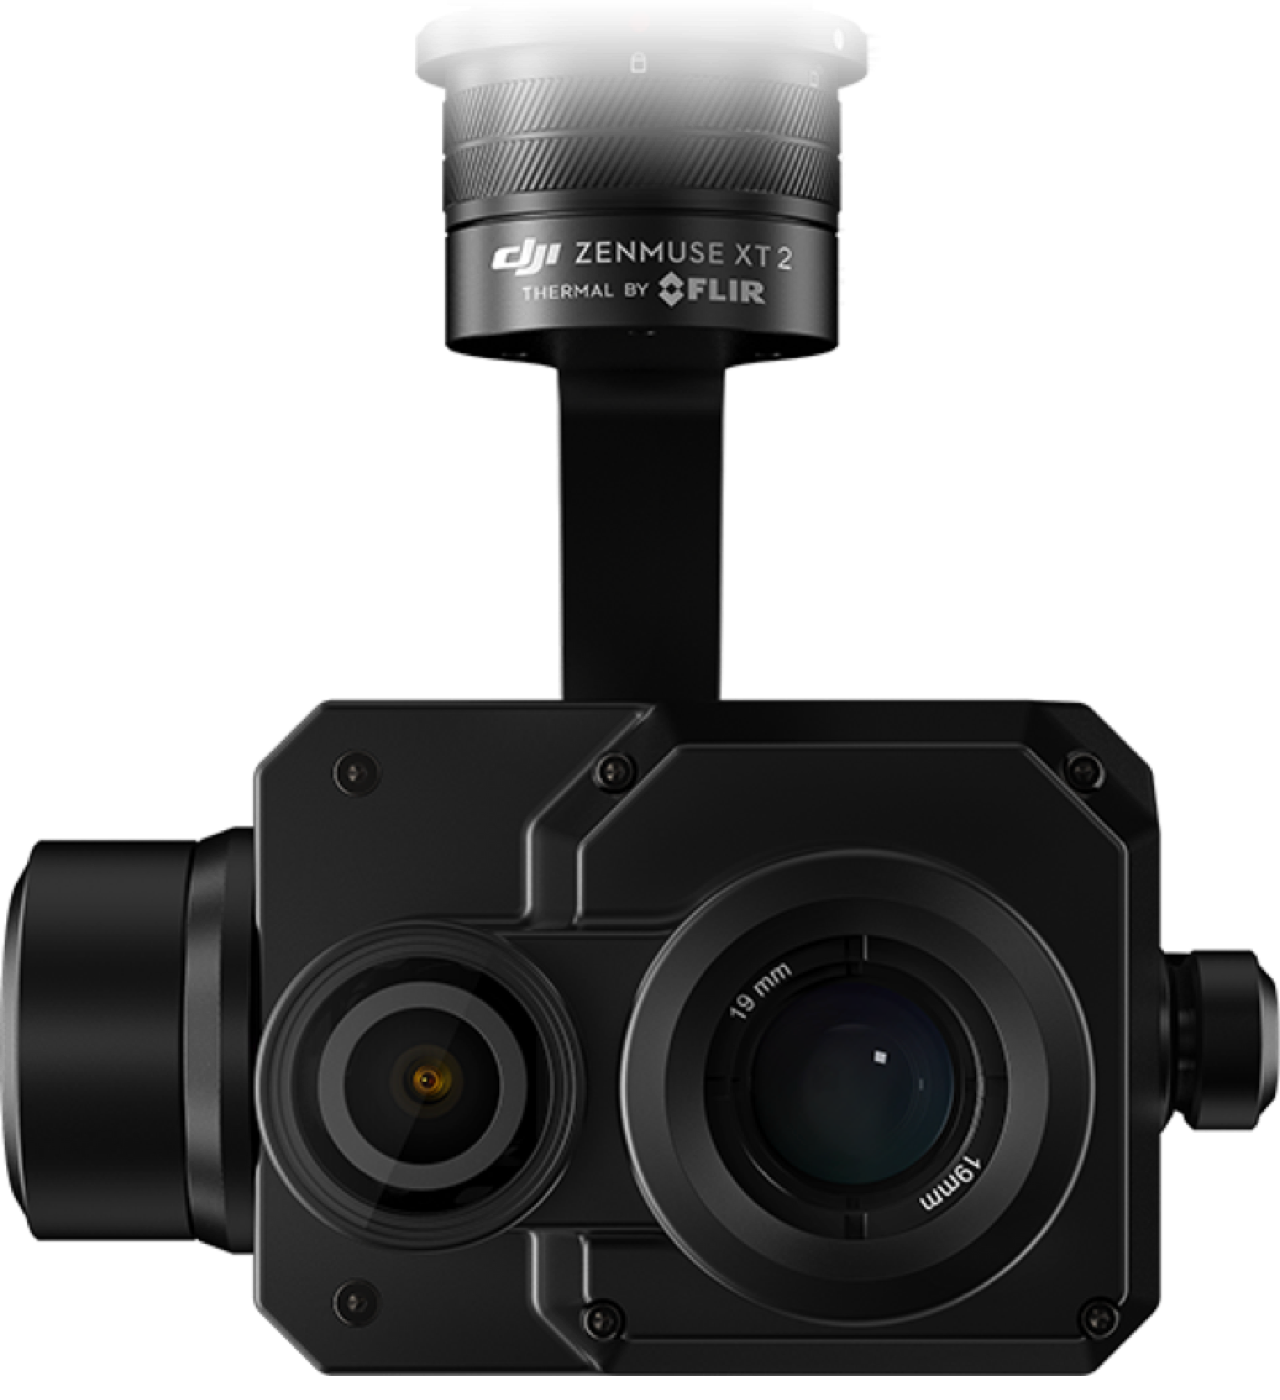 FLIR's New Drone Camera Offers Both Thermal and 4K Video ... |Drone Thermal Camera